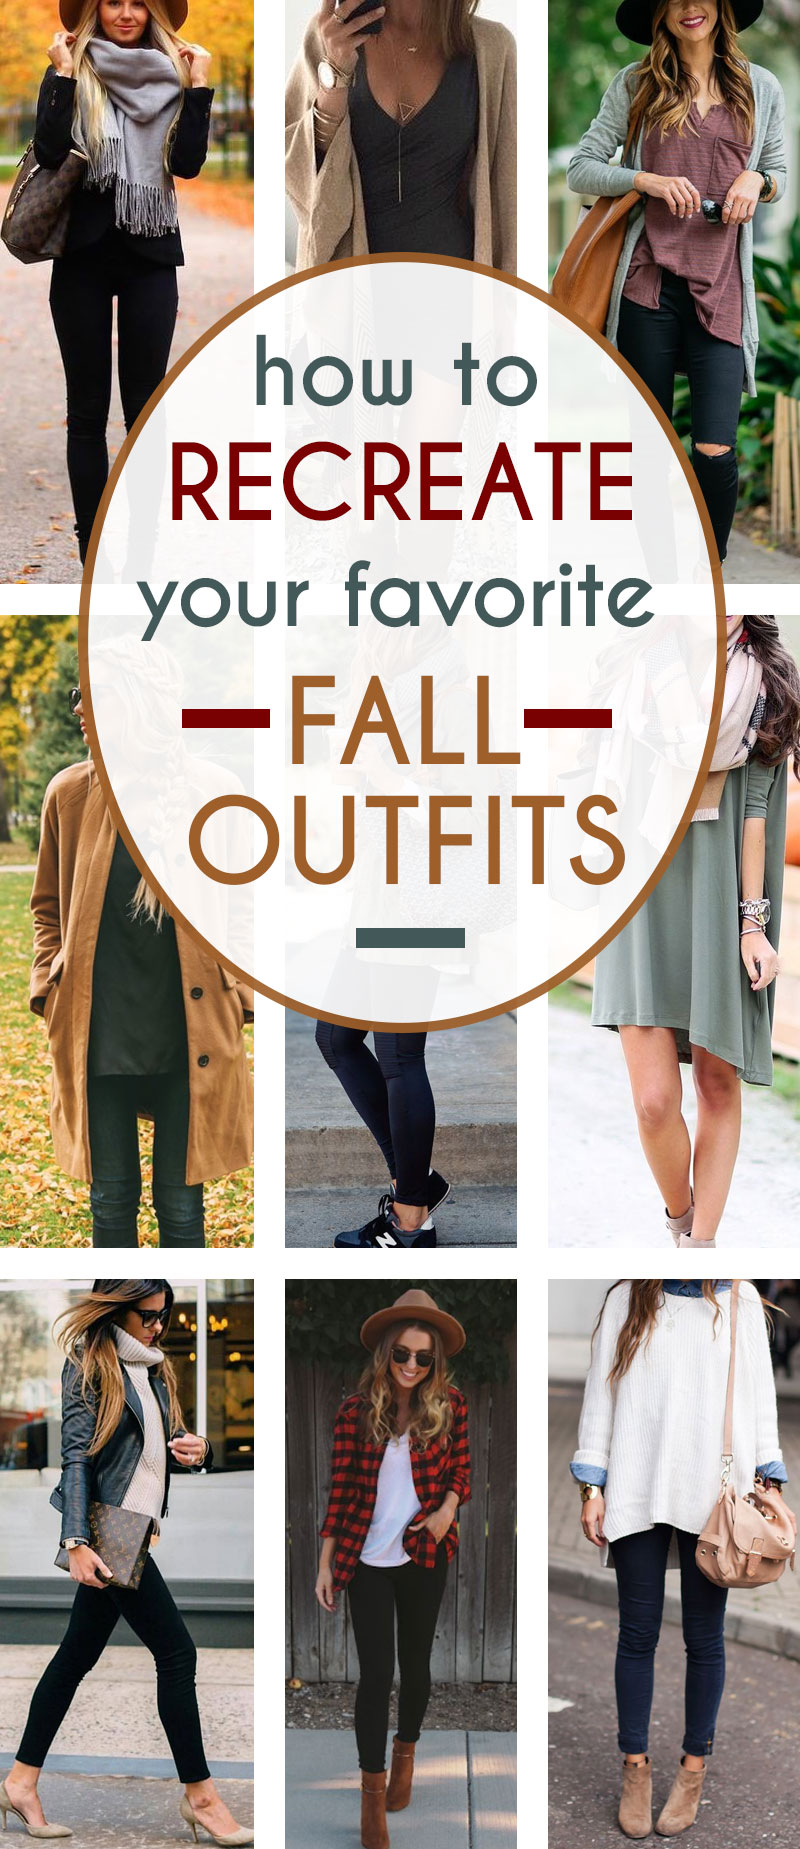 I can't wait to try and recreate these gorgeous fall outfits!